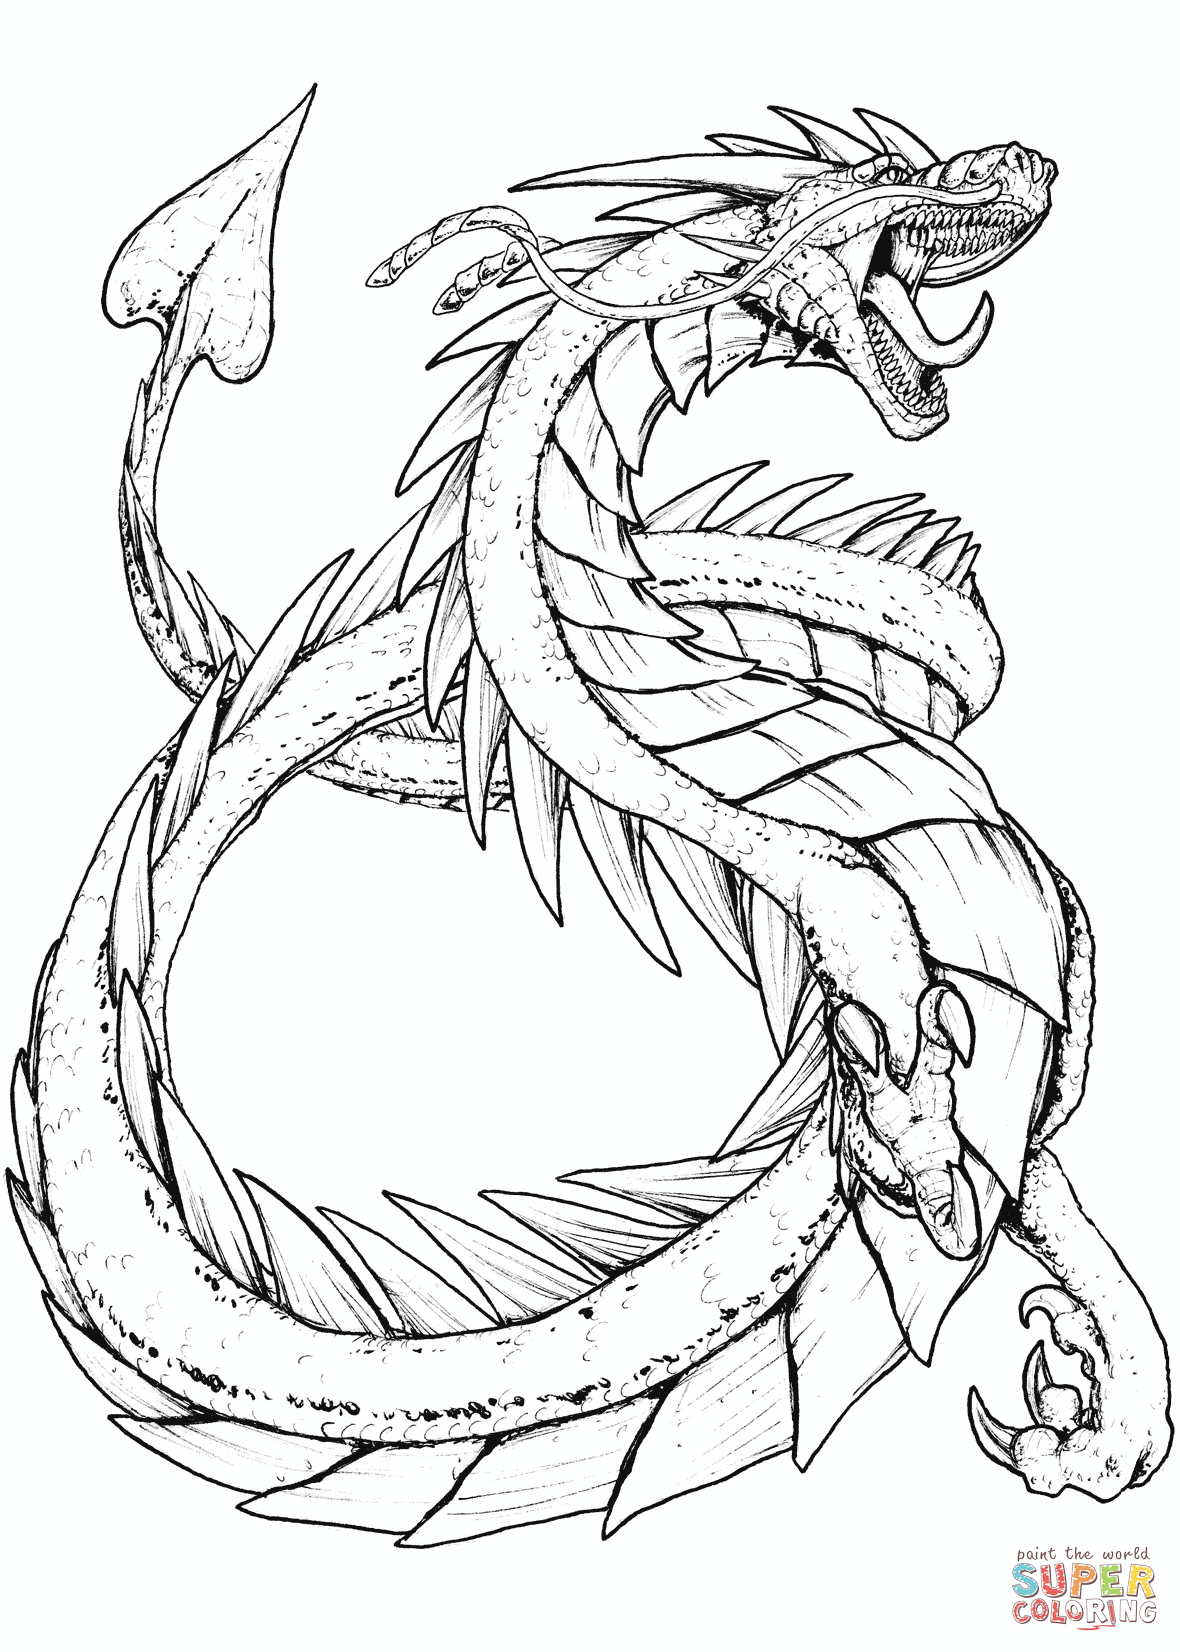 Mythological Creatures Coloring Pages  Download 6g - Save it to your computer